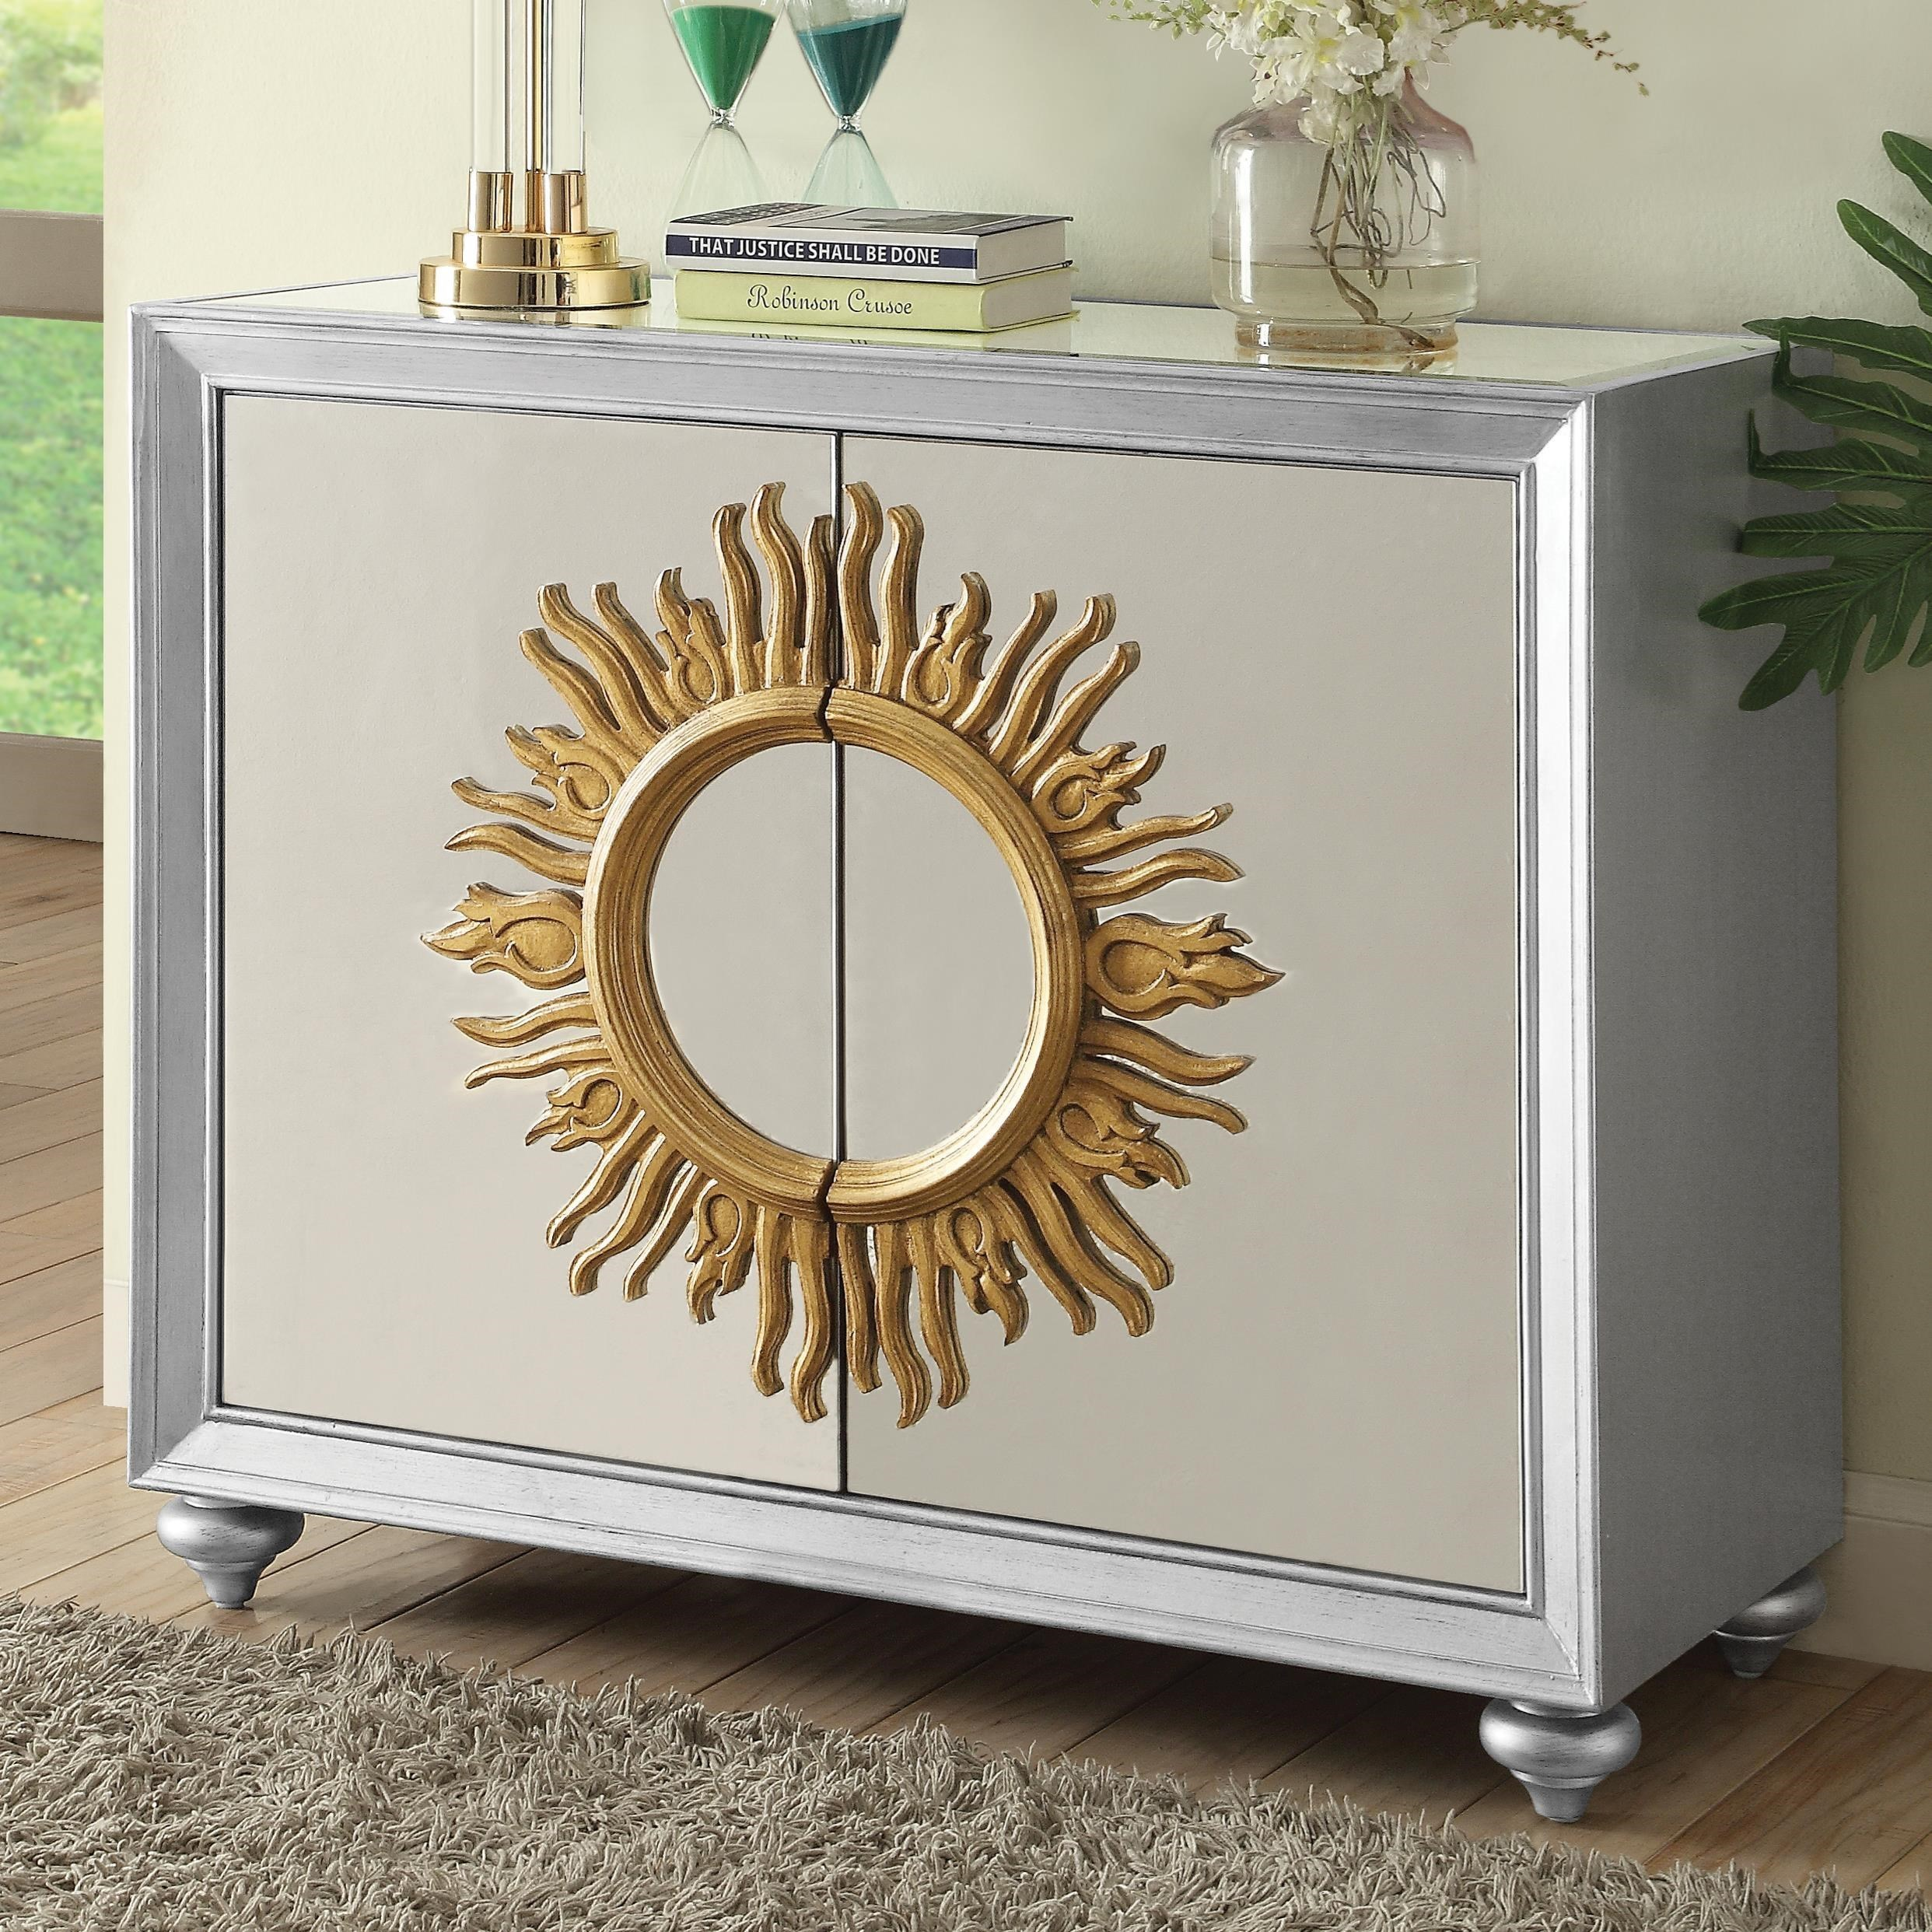 Coaster Accent Cabinets Accent Cabinet - Item Number: 950709